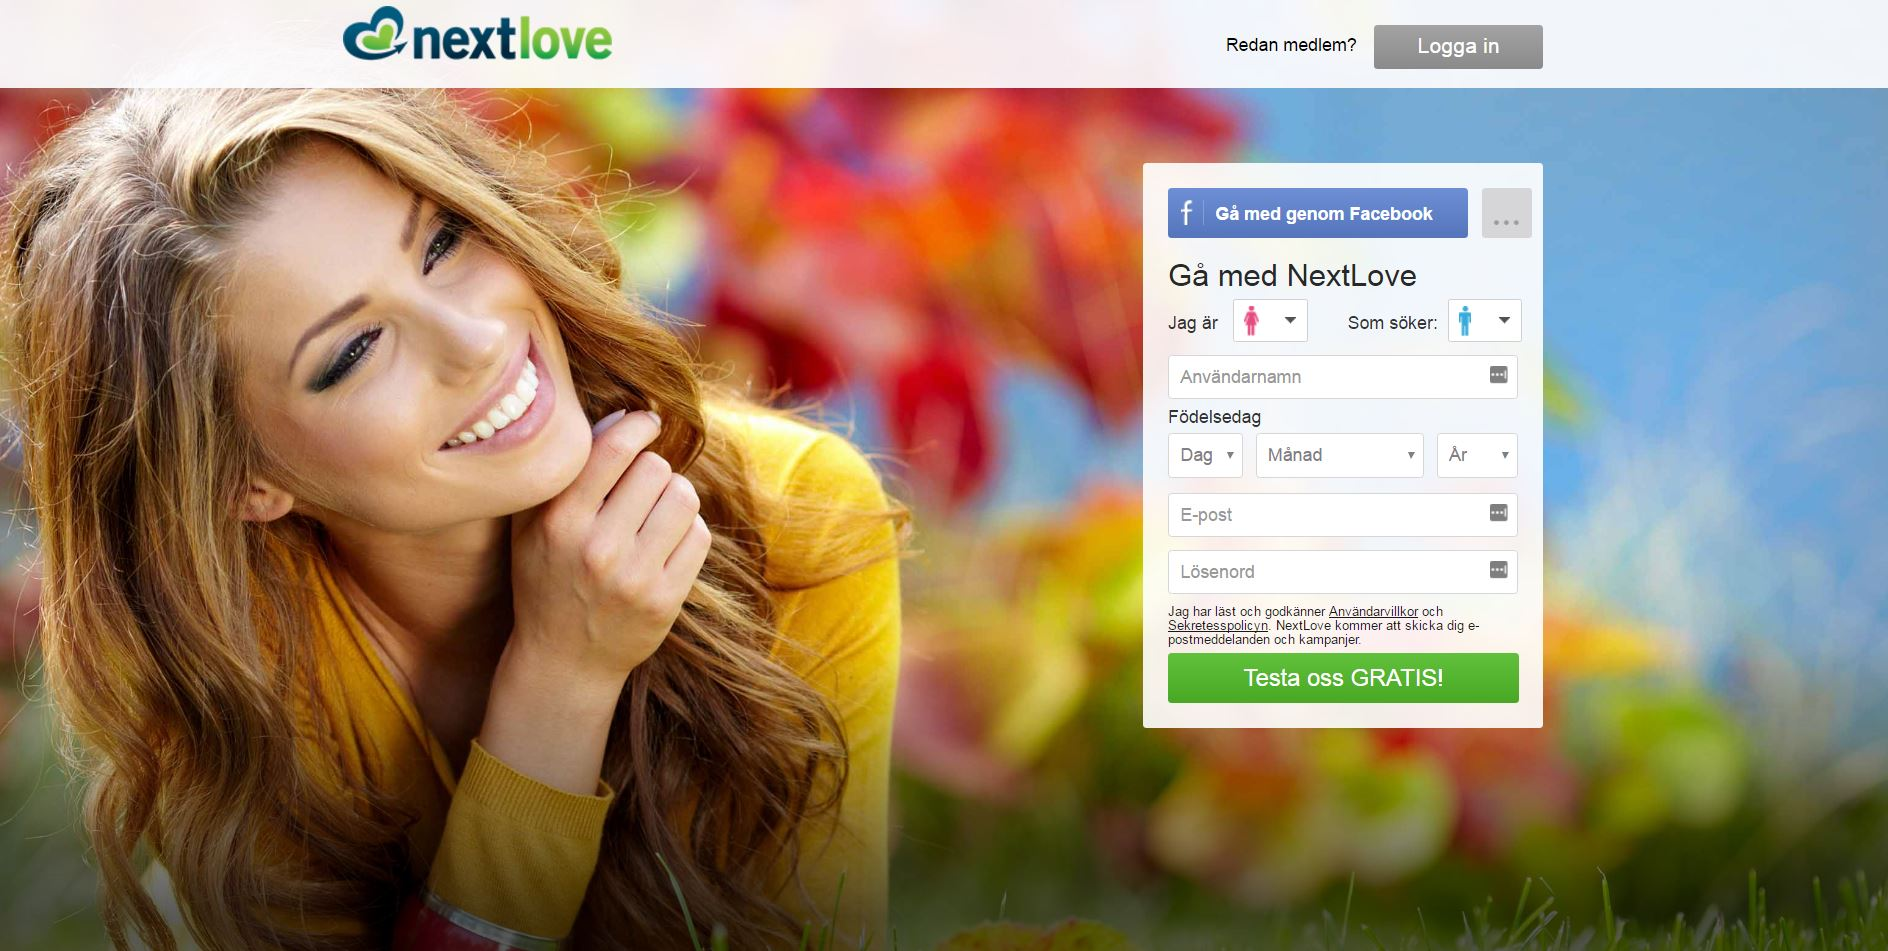 Dating sites: Nextlove